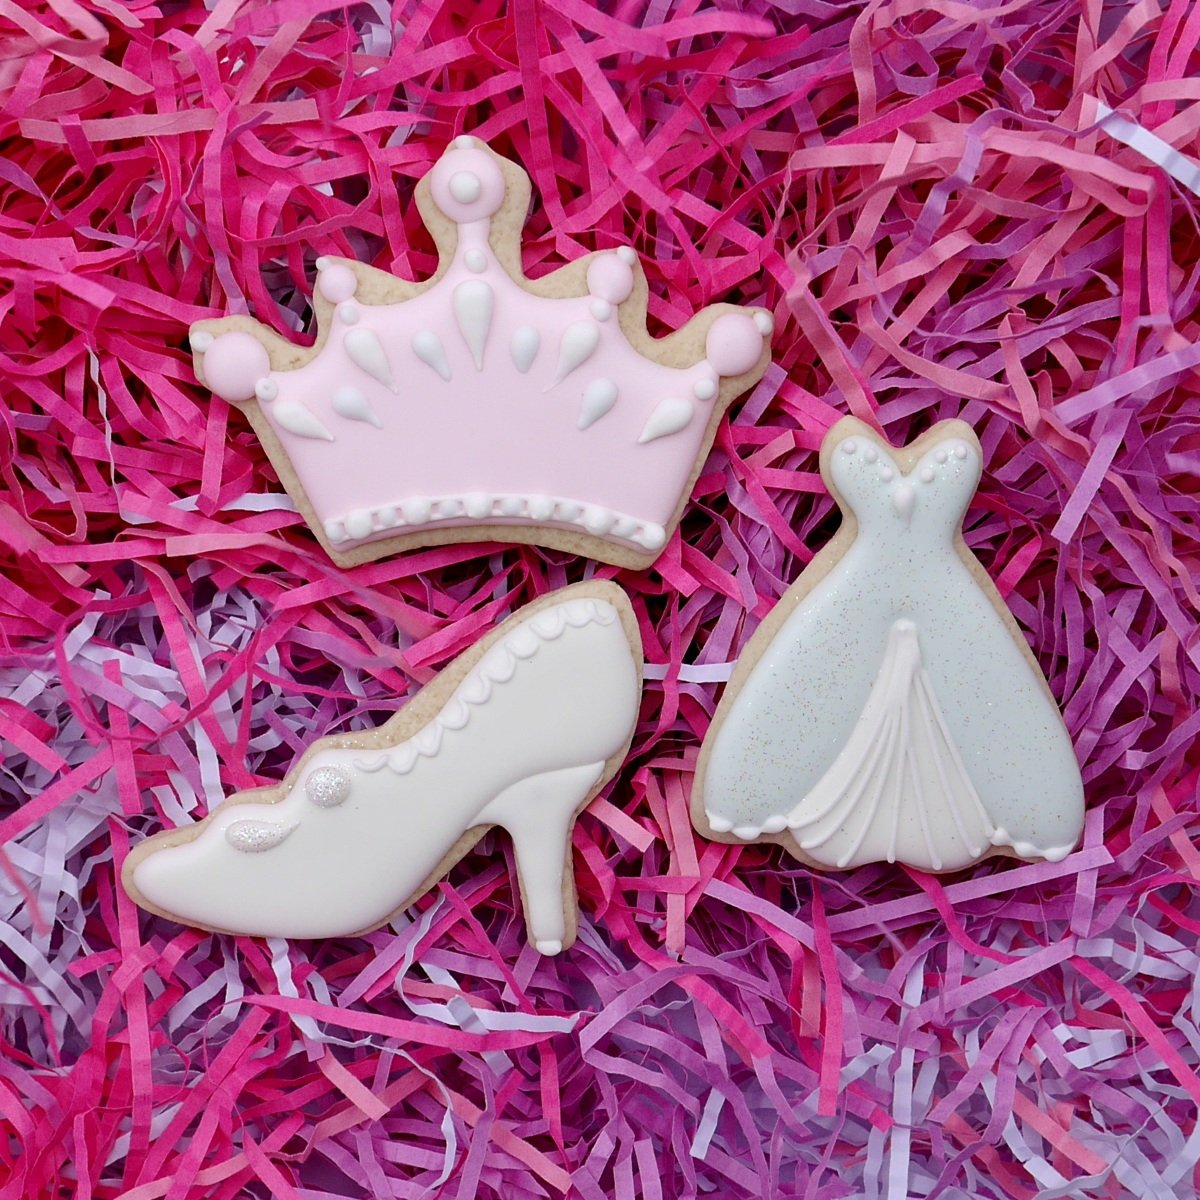 Princess Kingdom Cookie Cutter Set - 10 Piece Stainless Steel by Sweet Cookie Crumbs (Image #6)